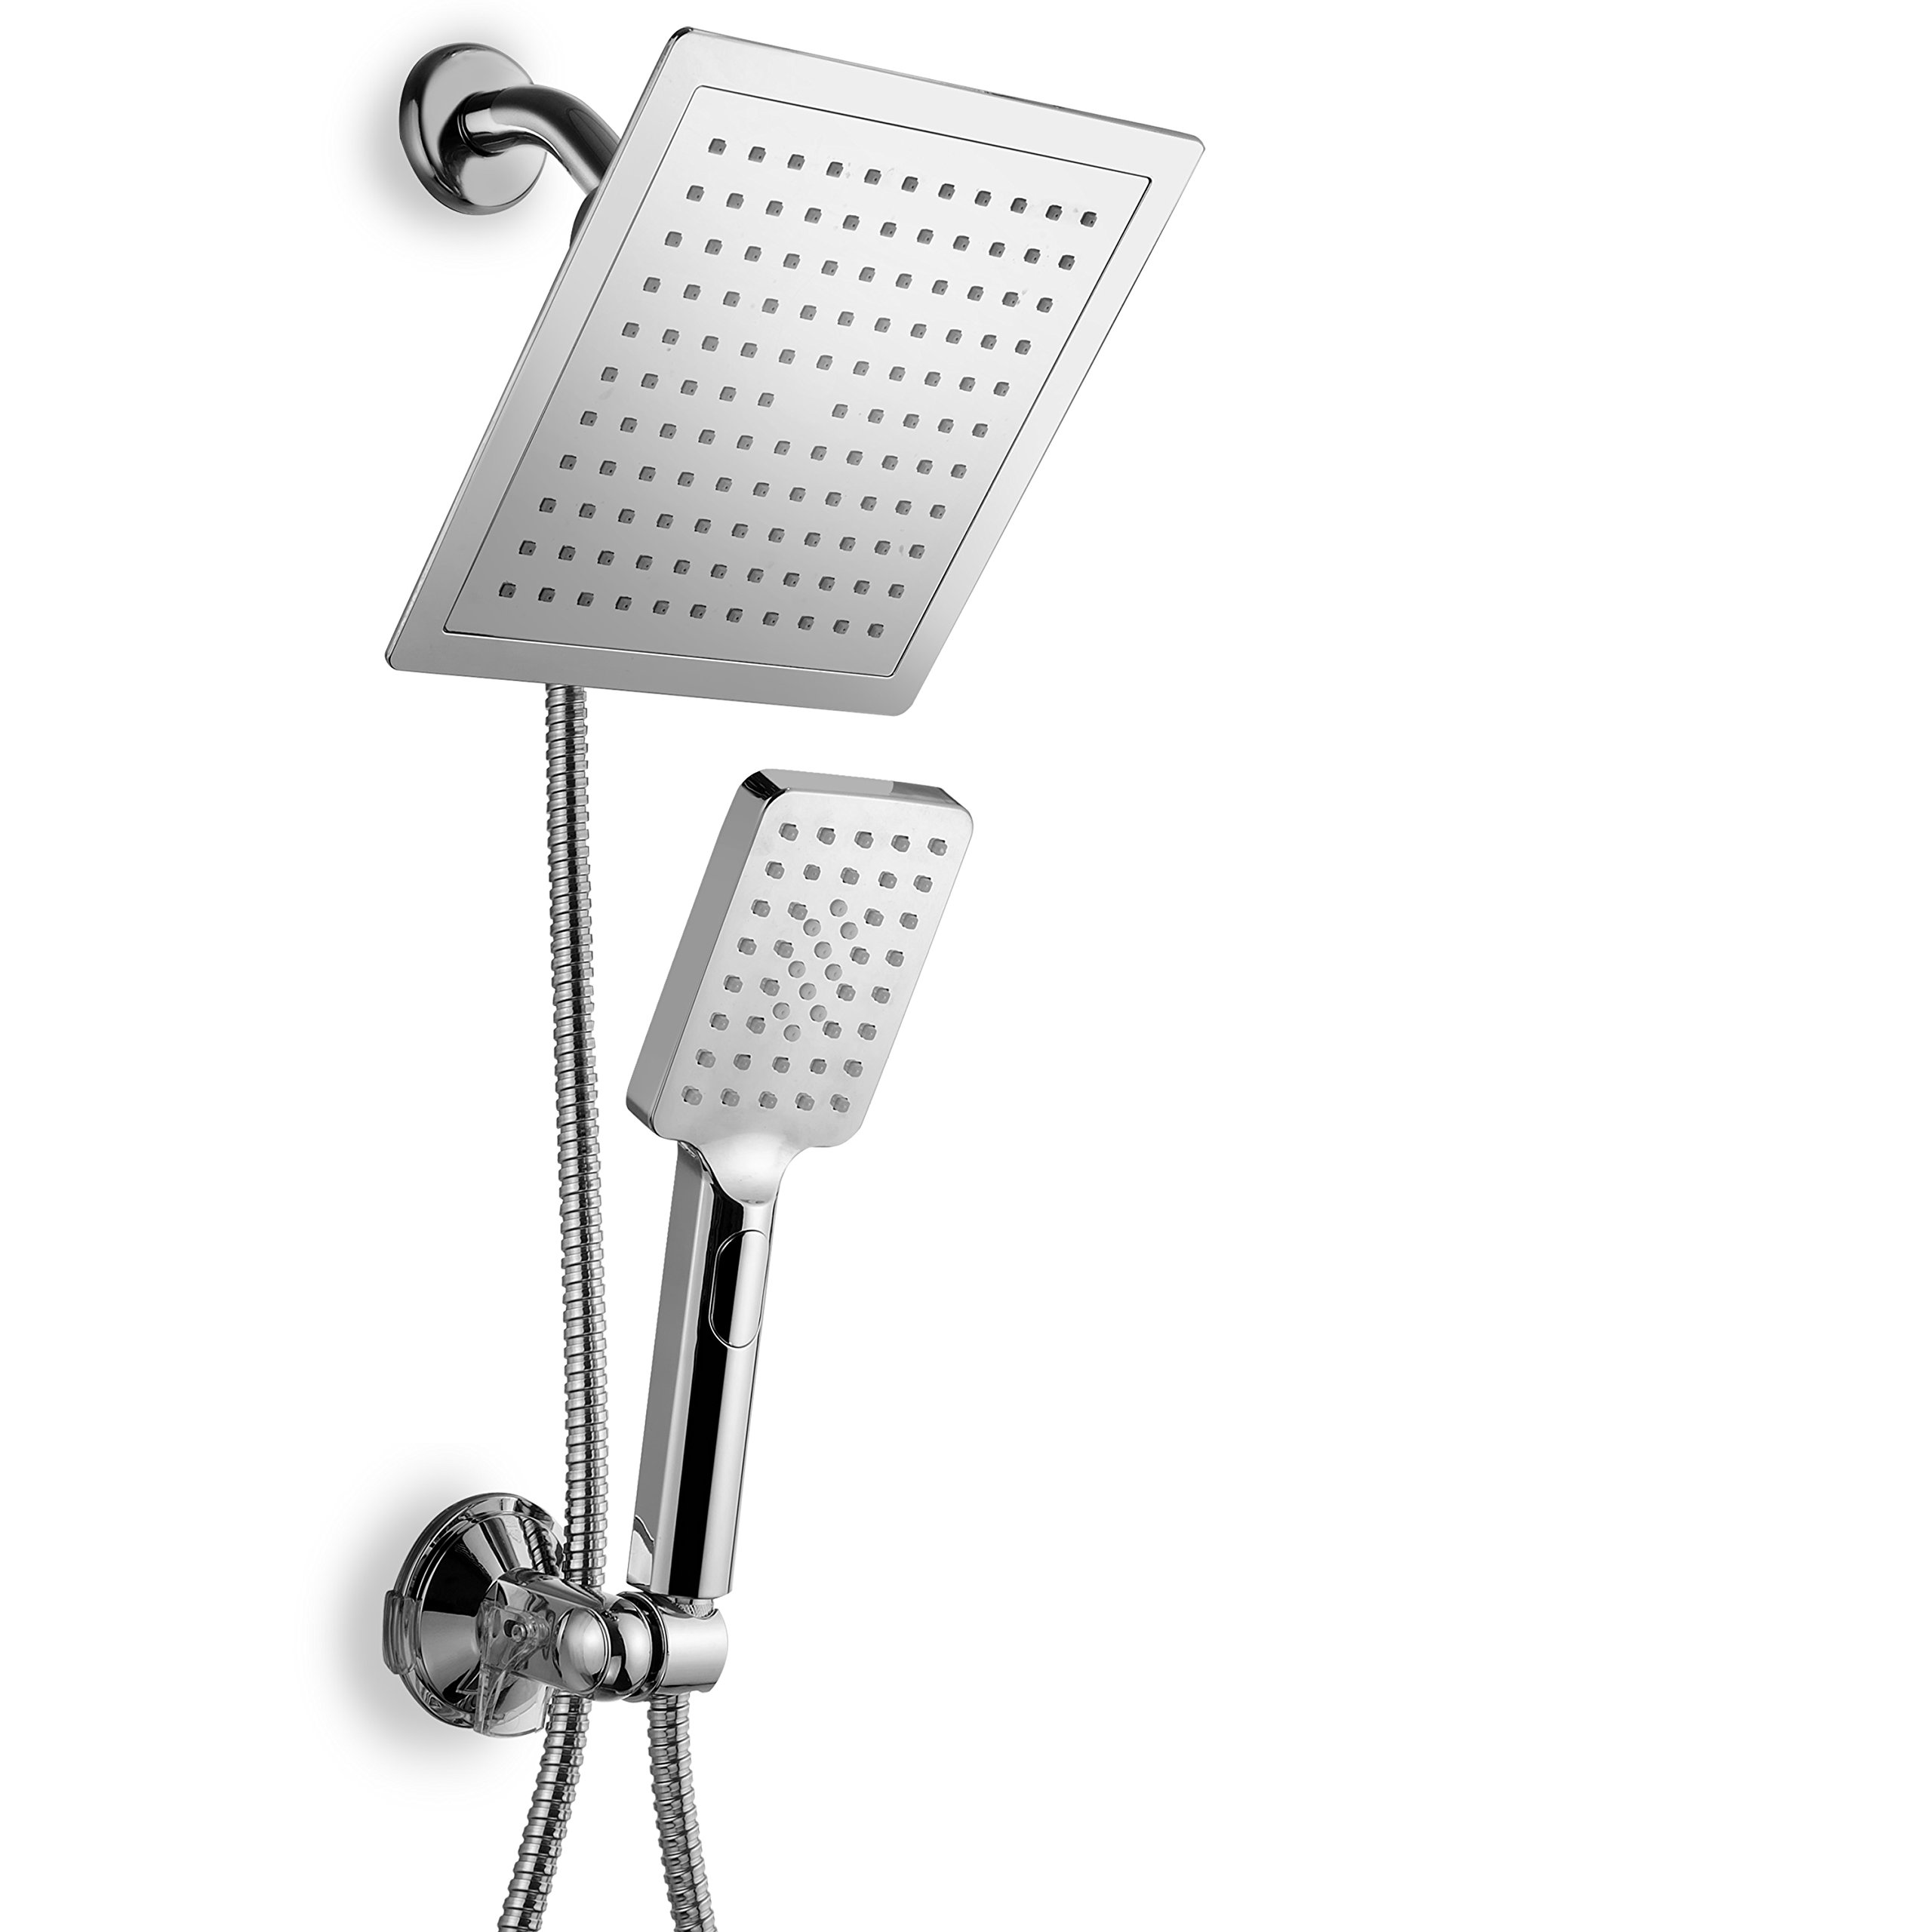 DreamSpa Hotel Spa Ultra-Luxury 9'' Square Rainfall Shower Head / Handheld Combo. Convenient Push-Button Flow Control for easy one-hand operation. Switch flow settings with same hand! Premium Chrome.